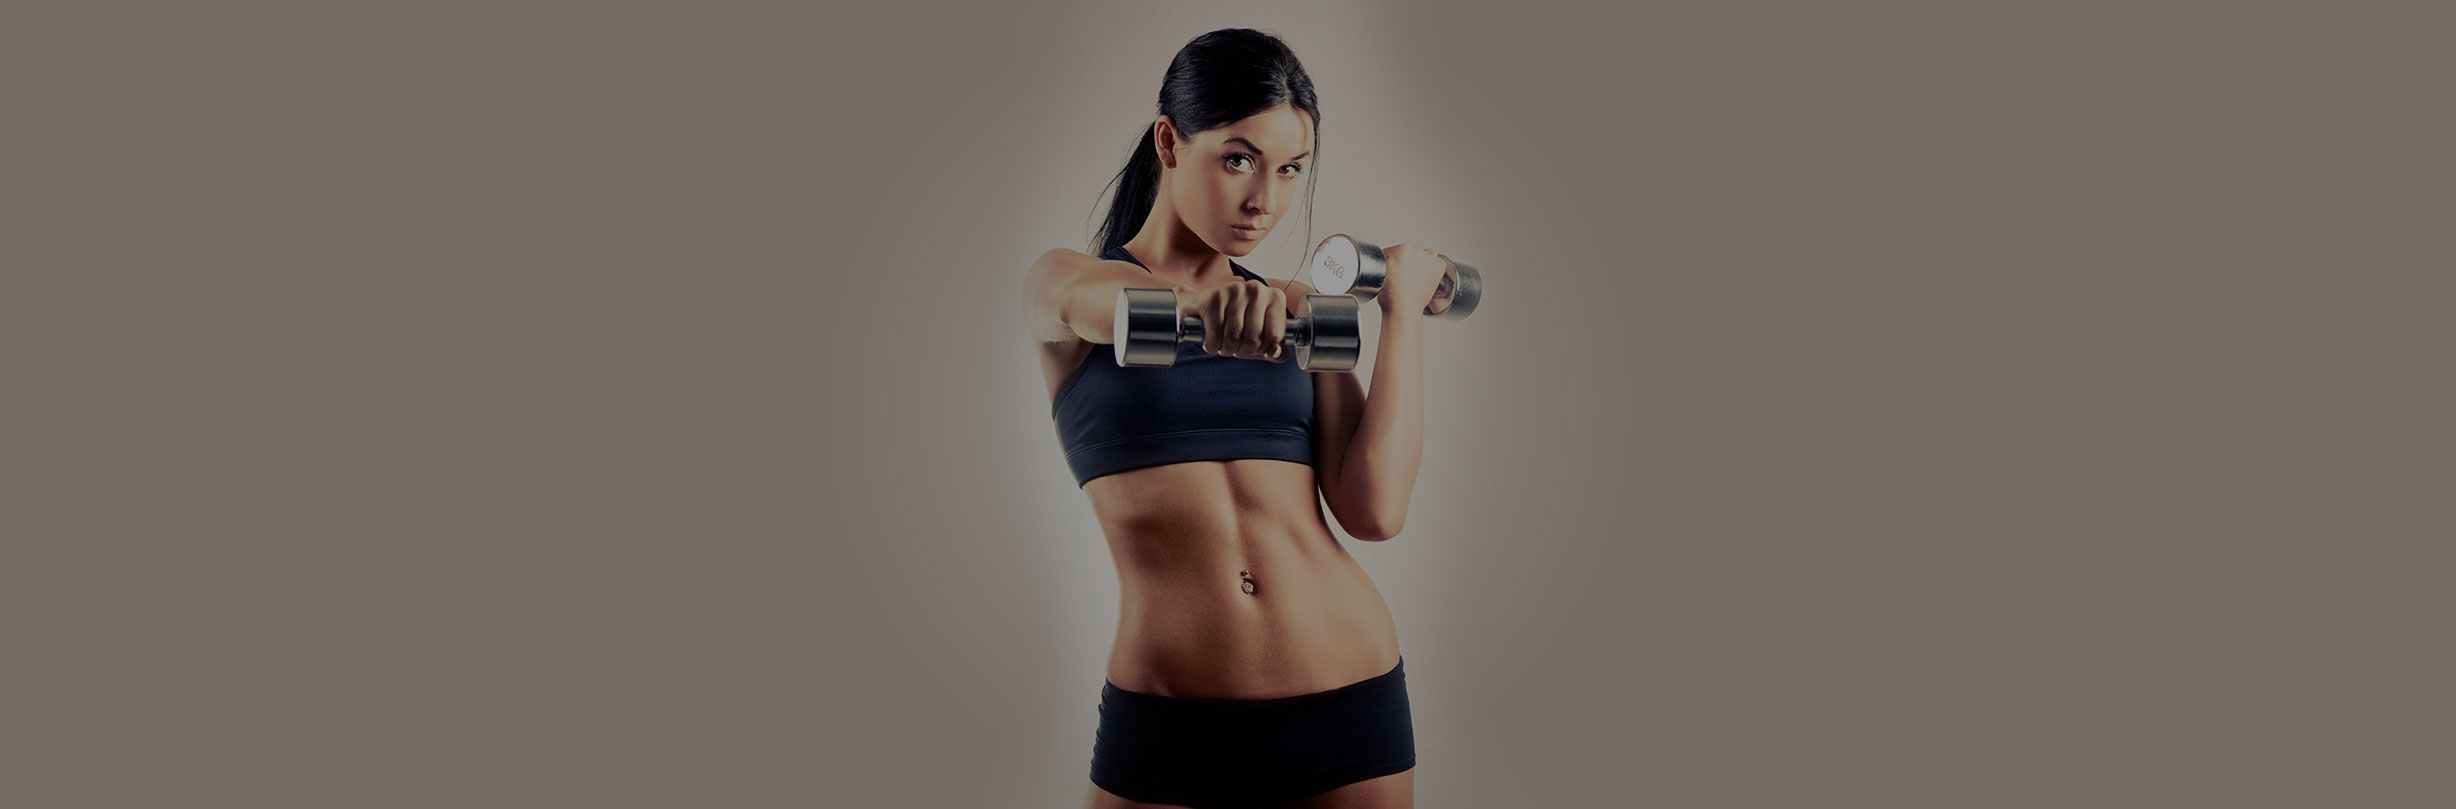 Add weight to your Kegel exercises